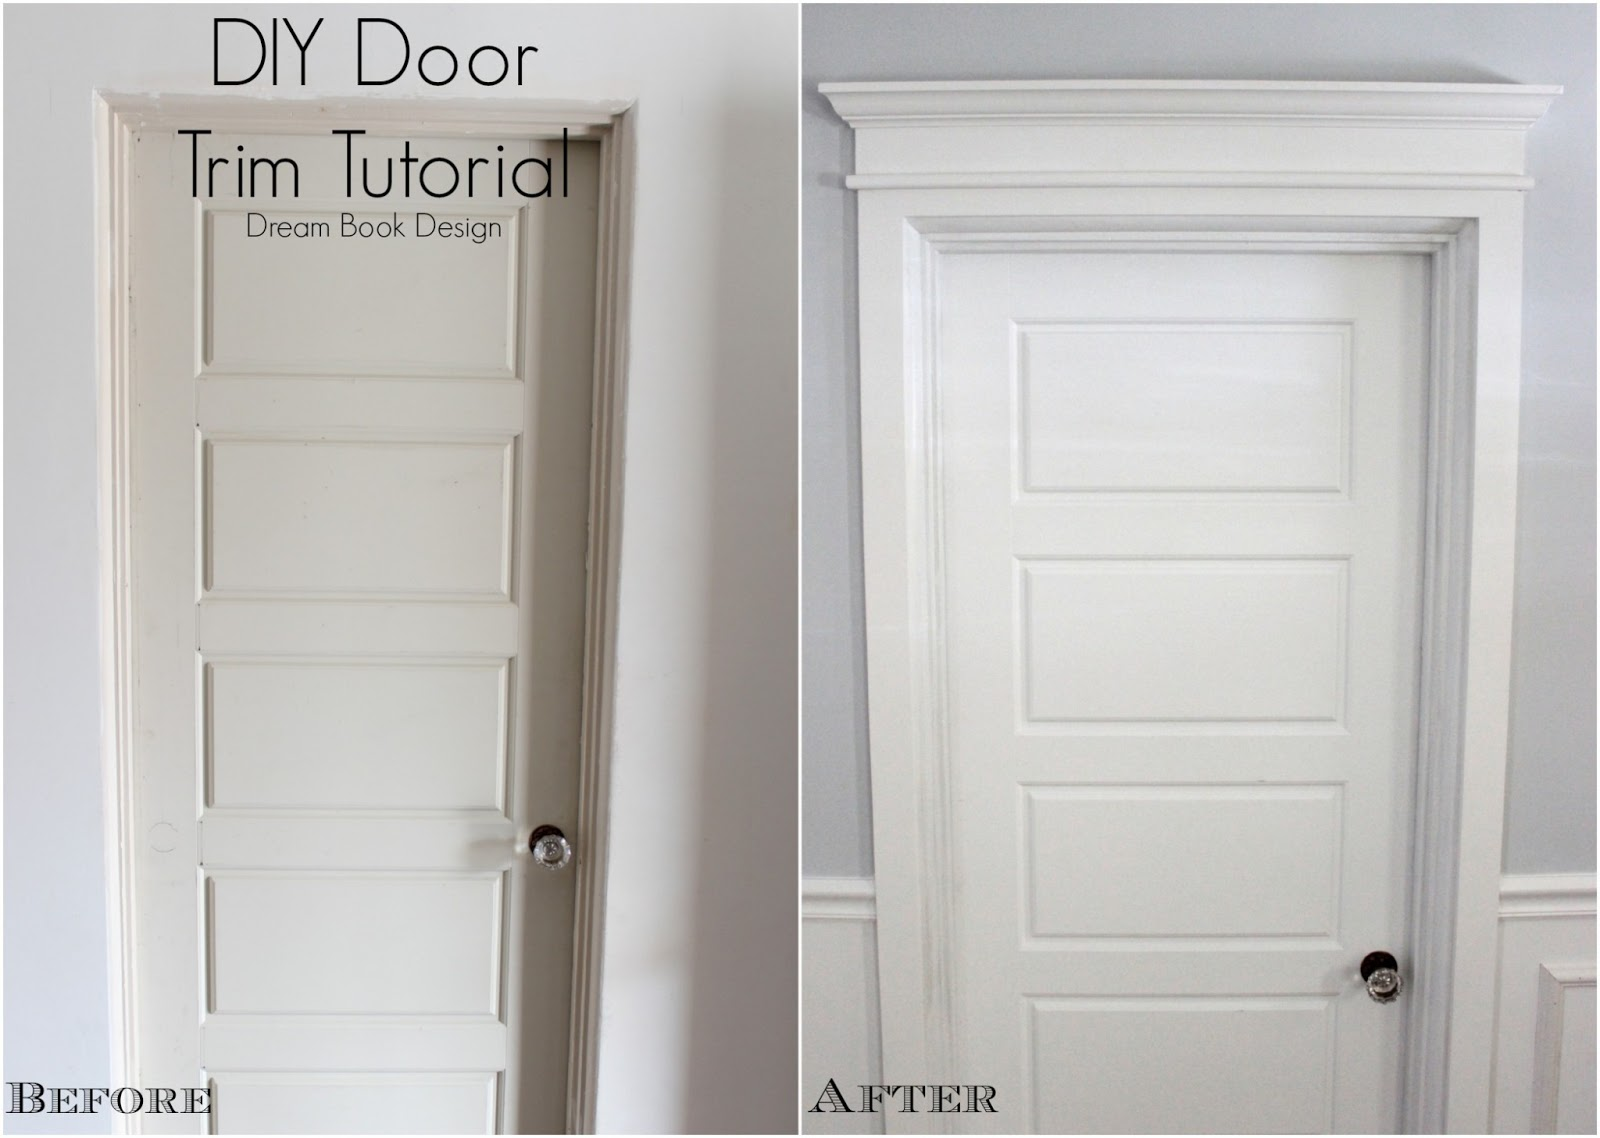 DIY Door Trim Tutorial